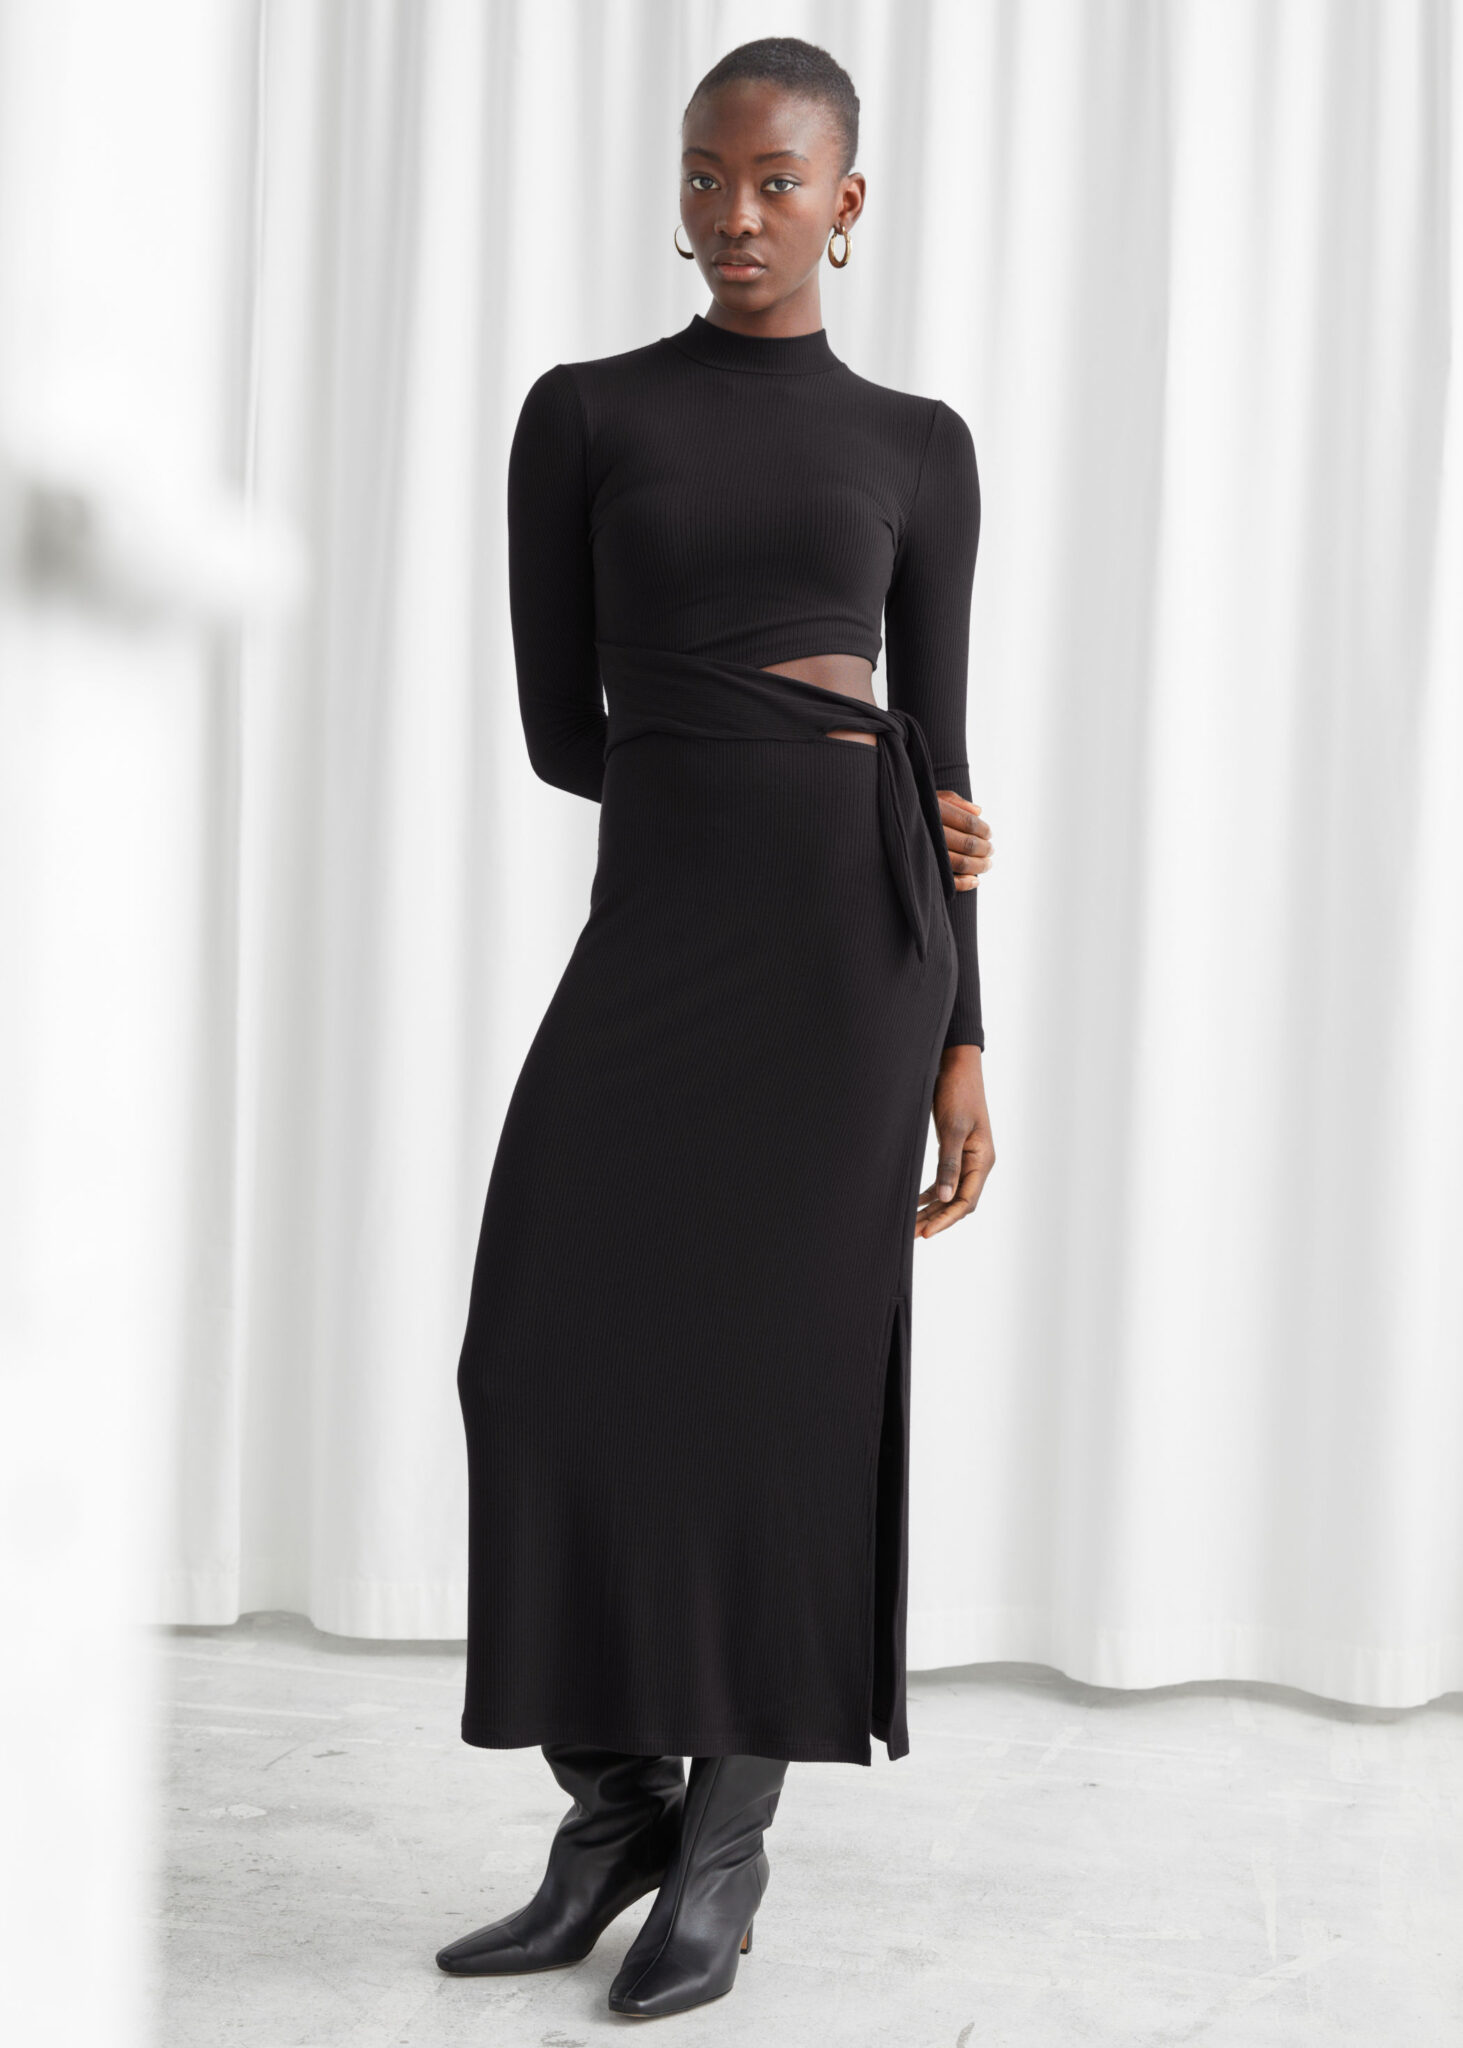 Mock Neck Cut Out Midi Dress, & Other Stories, £65.00